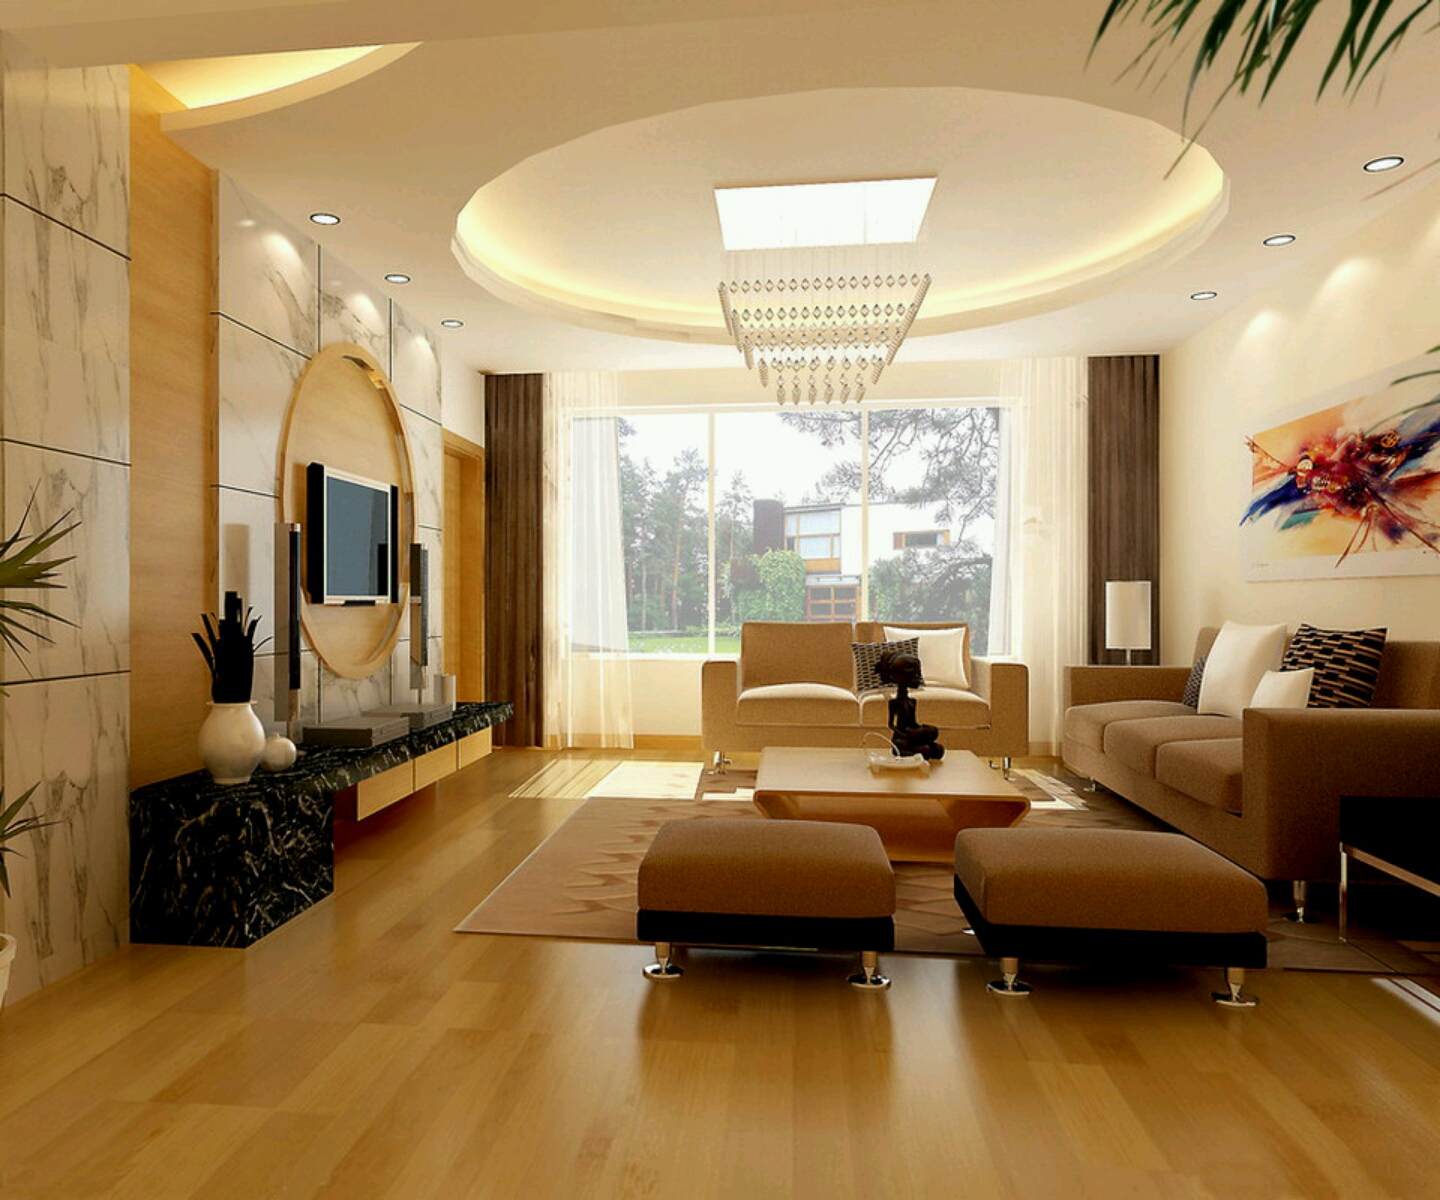 Modern interior decoration living rooms ceiling designs for Home design ideas living room